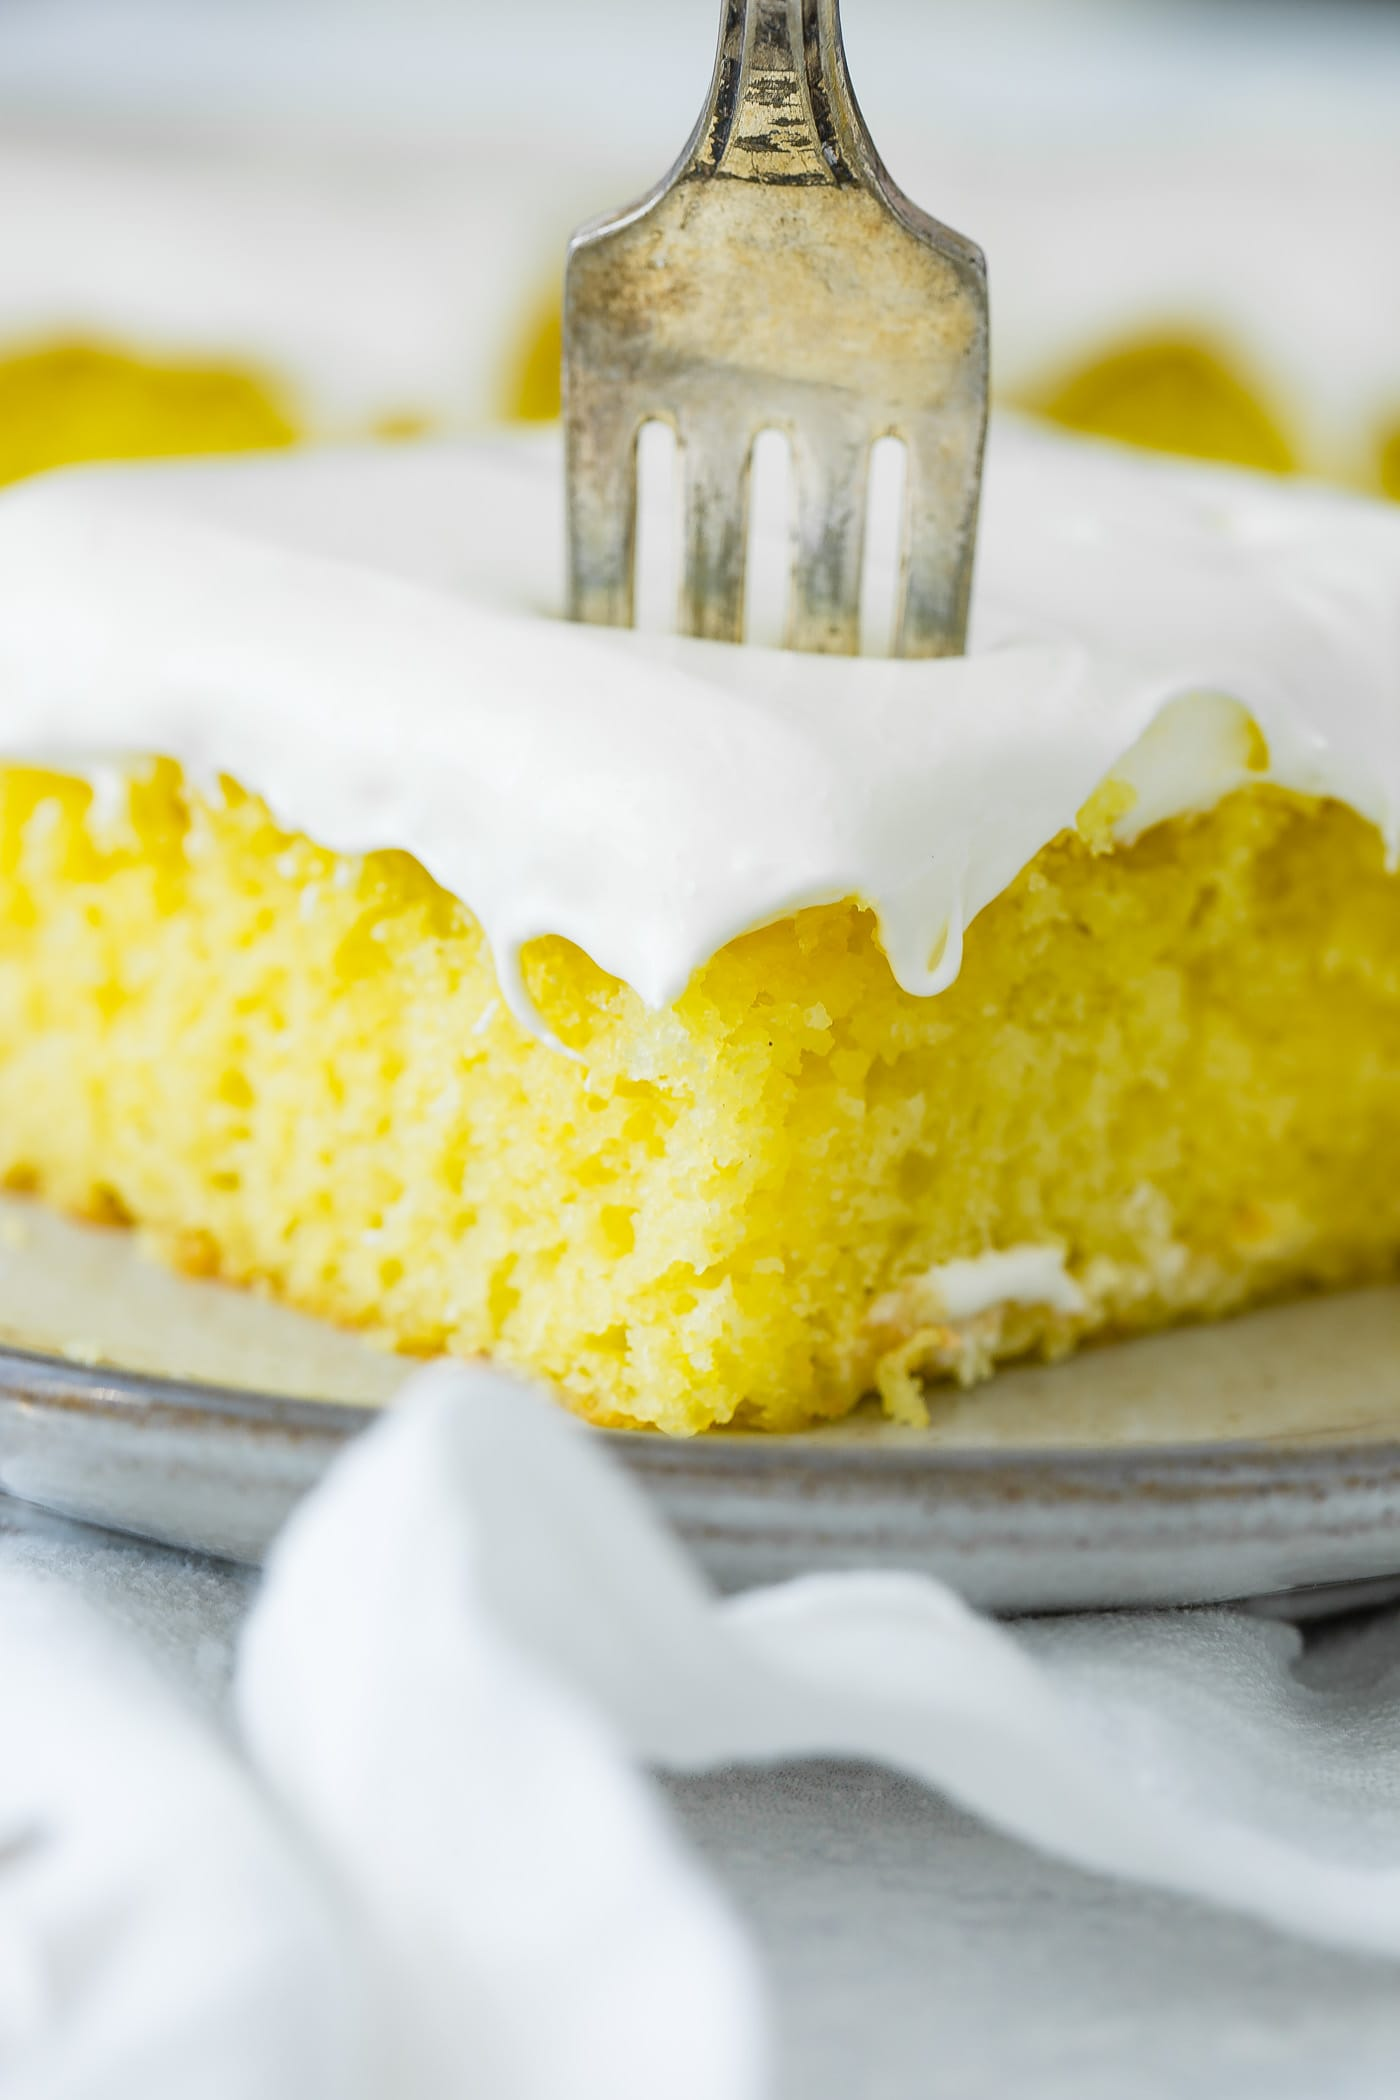 A slice of frosted lemon jello cake with a fork sticking into the top. It is on a serving plate which is sitting on a white linen napkin.